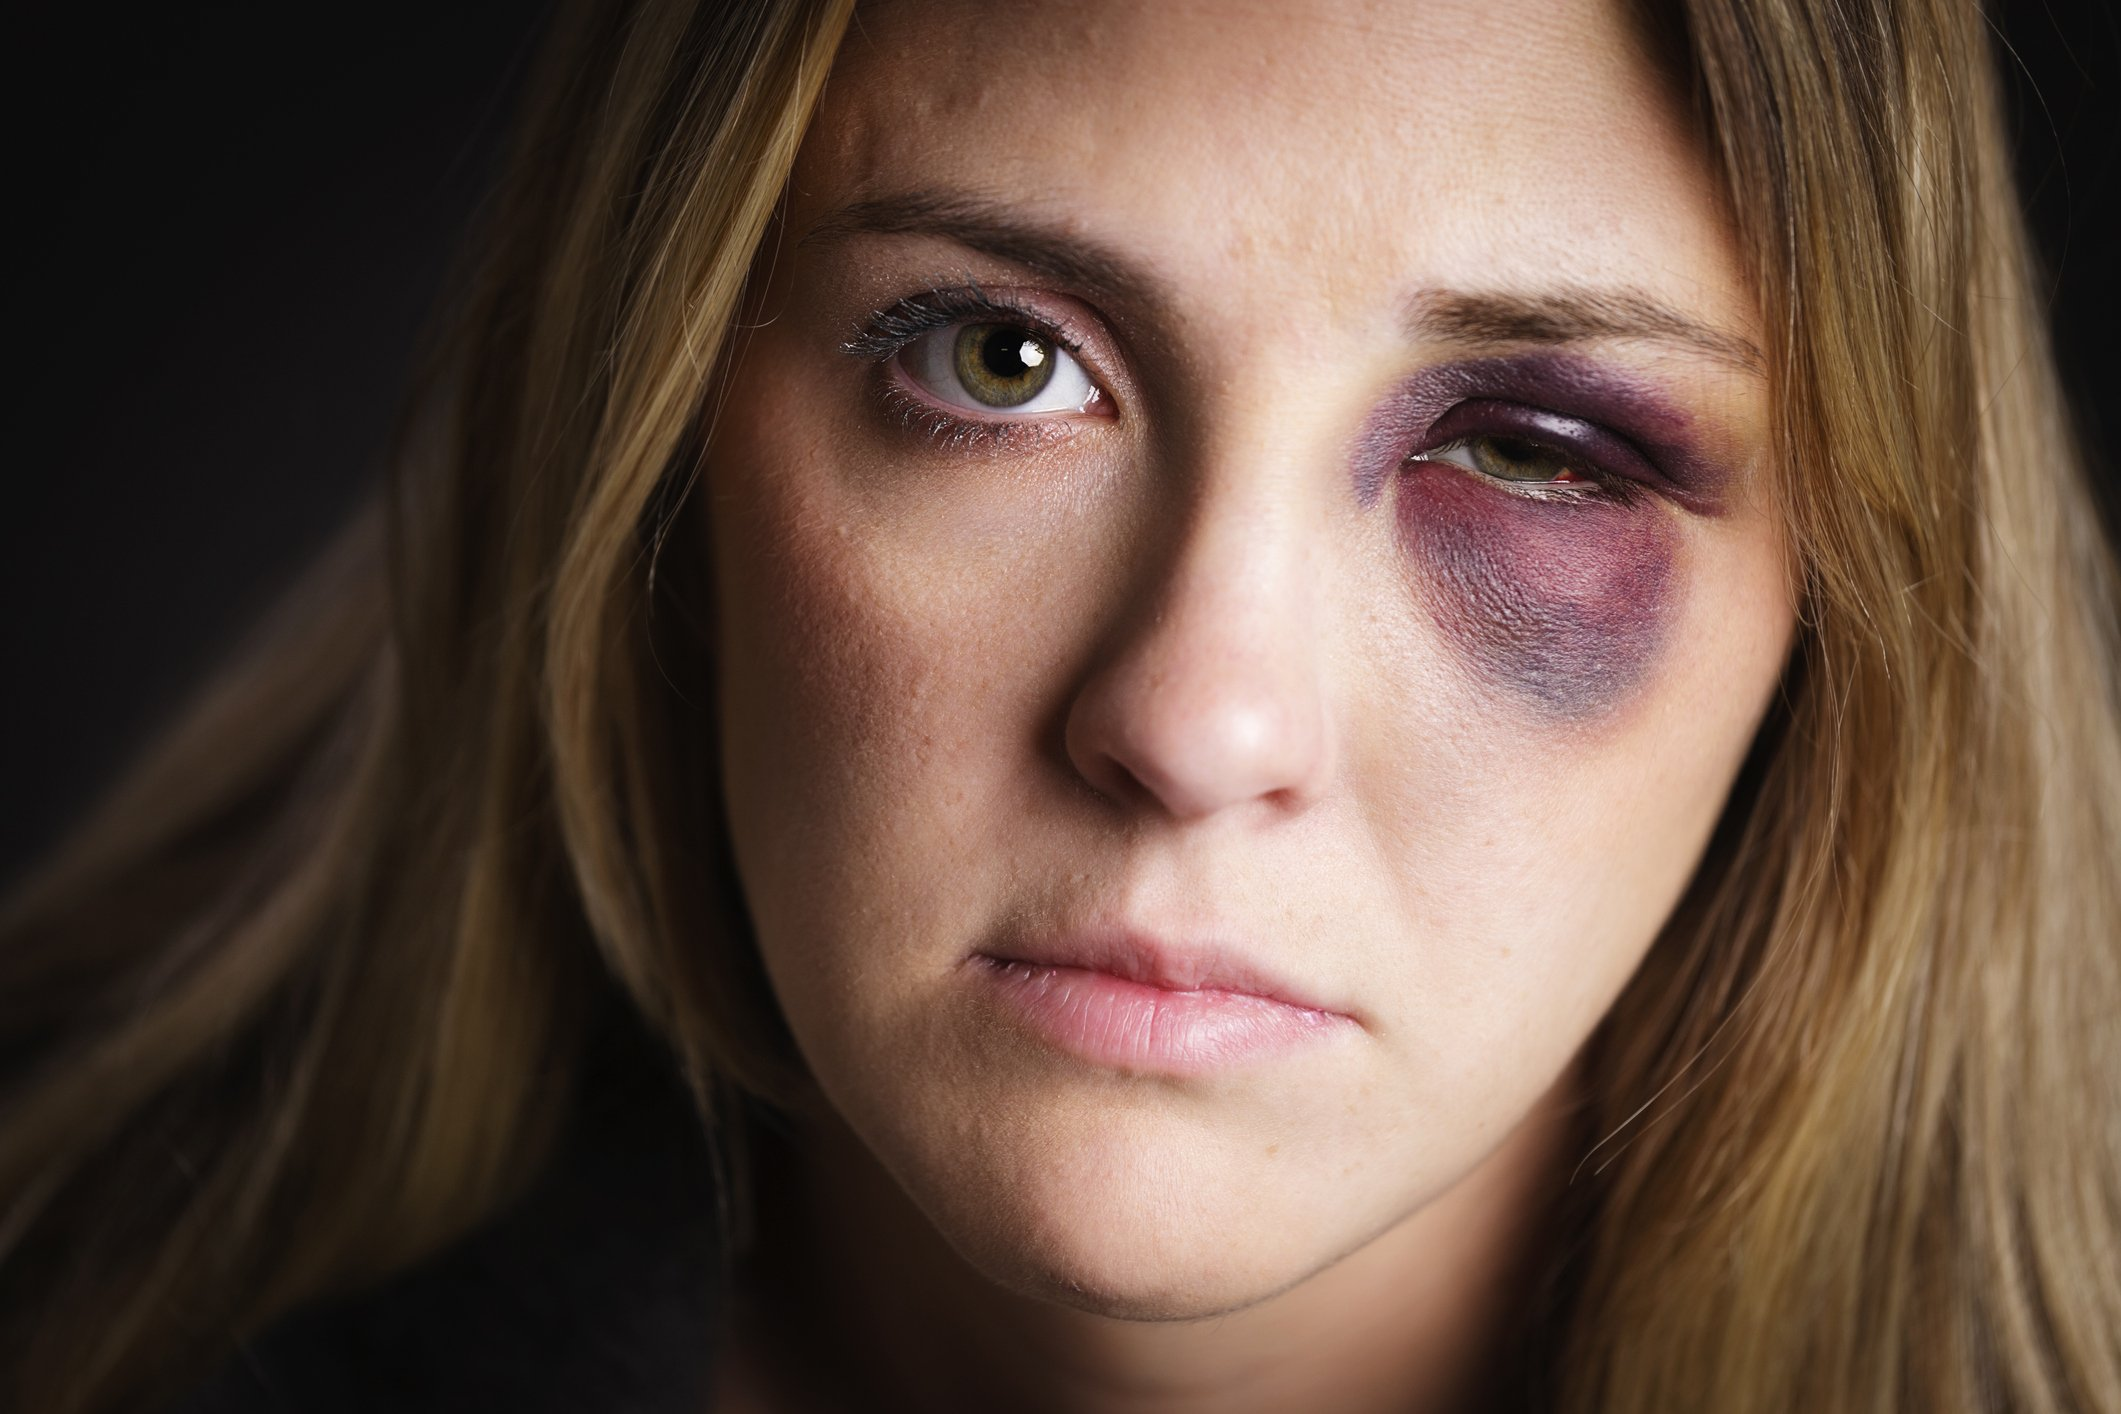 A pretty young blond woman with a black eye. | Photo: Getty Images.